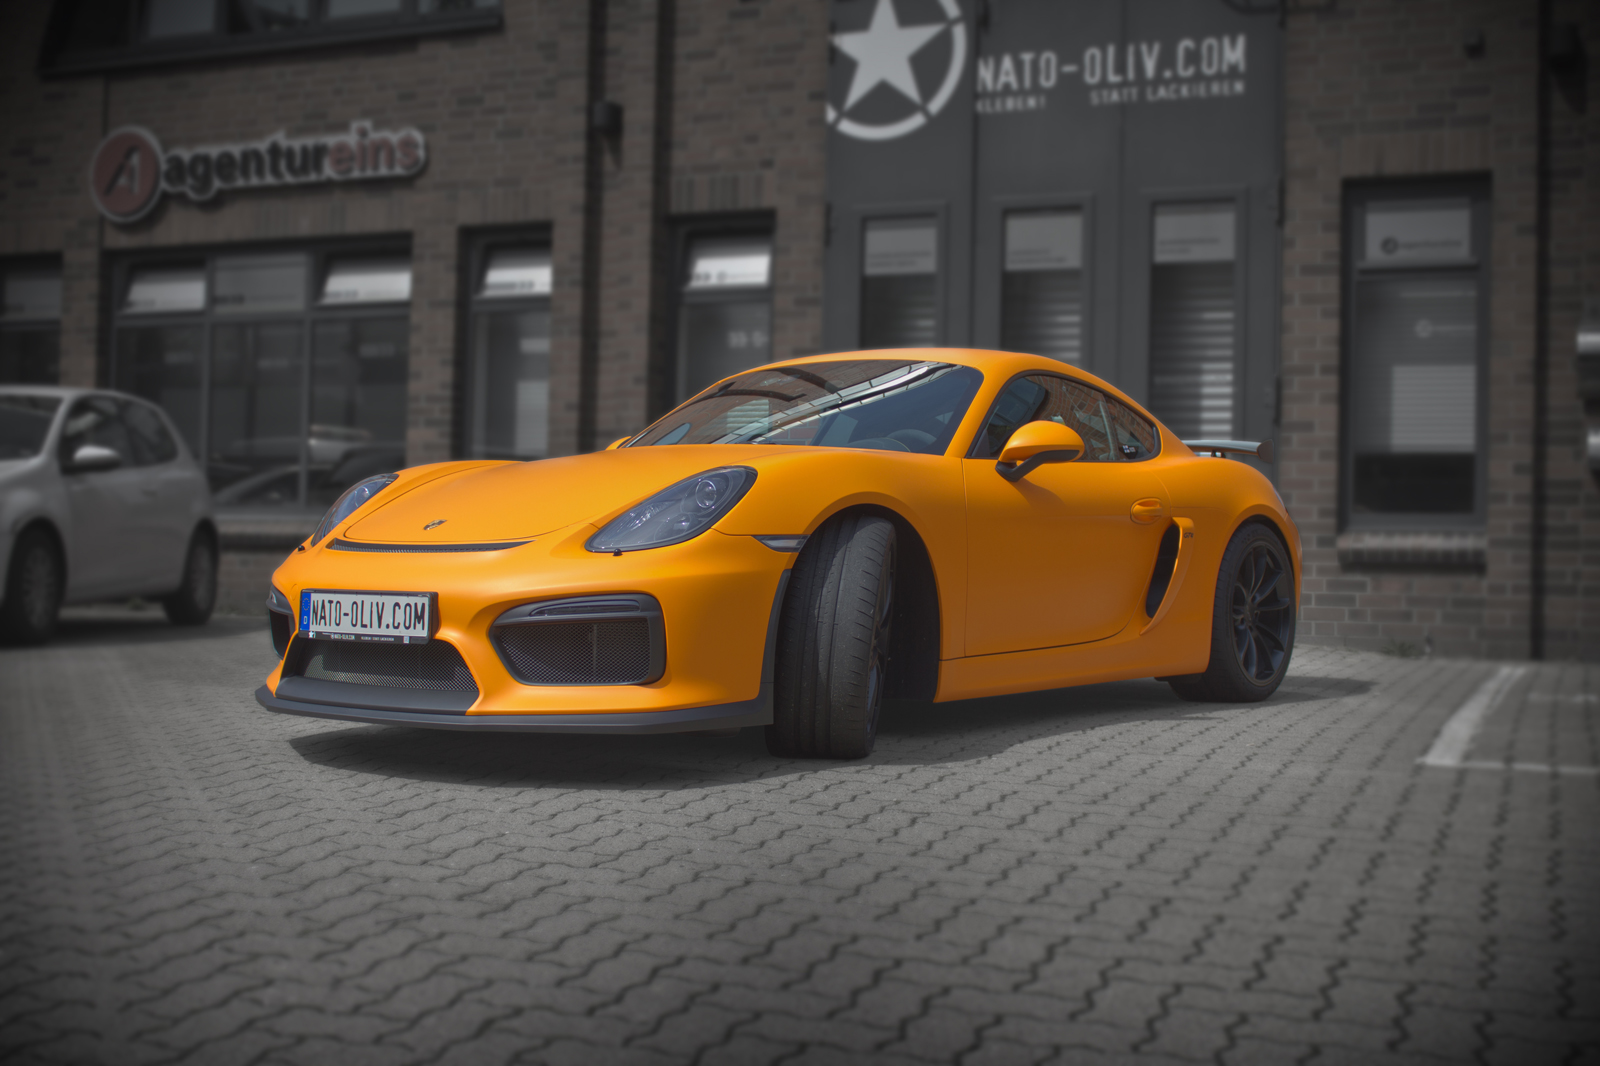 PORSCHE_CAYMAN_GT4_FOLIERUNG_ORANGE_MATT_TITELBILD_16BIT_02